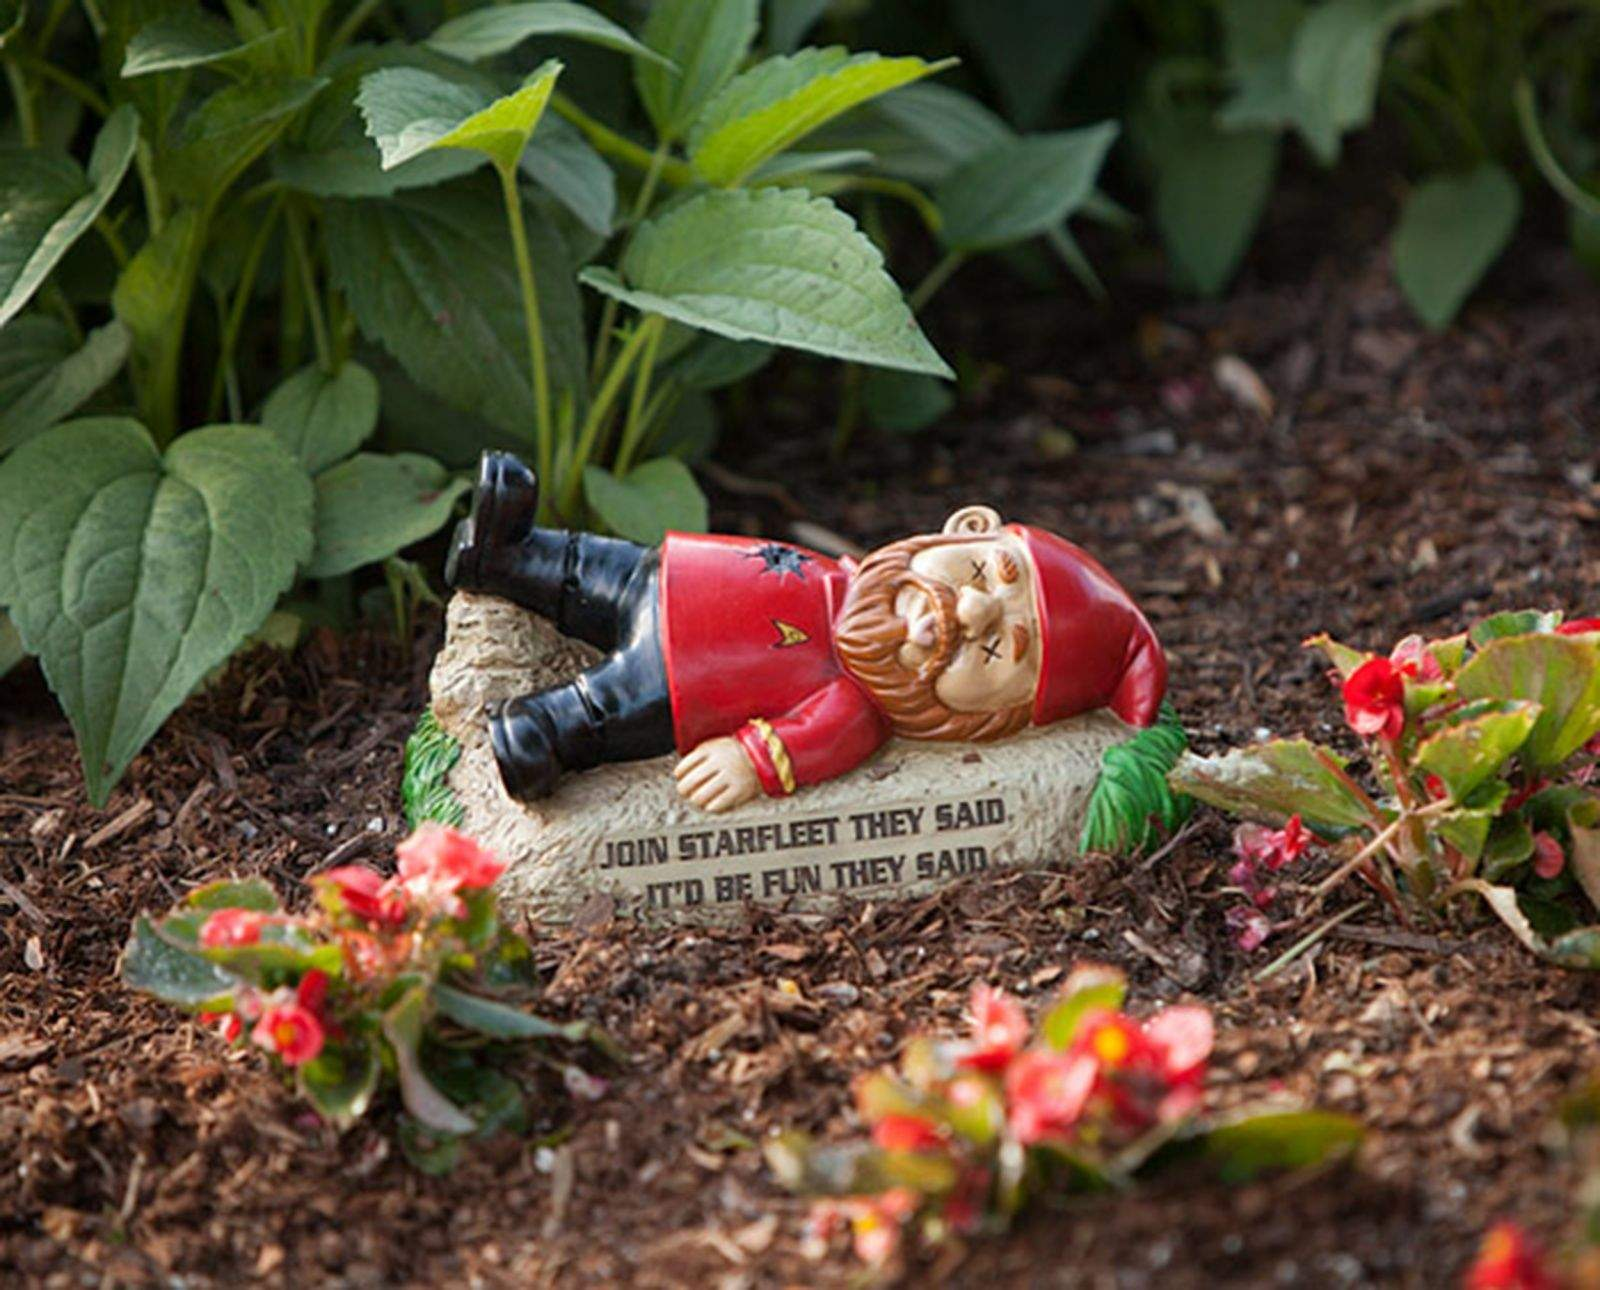 Gnome In Garden: Star Trek Garden Gnomes Should Boldly Go In Your Back Yard